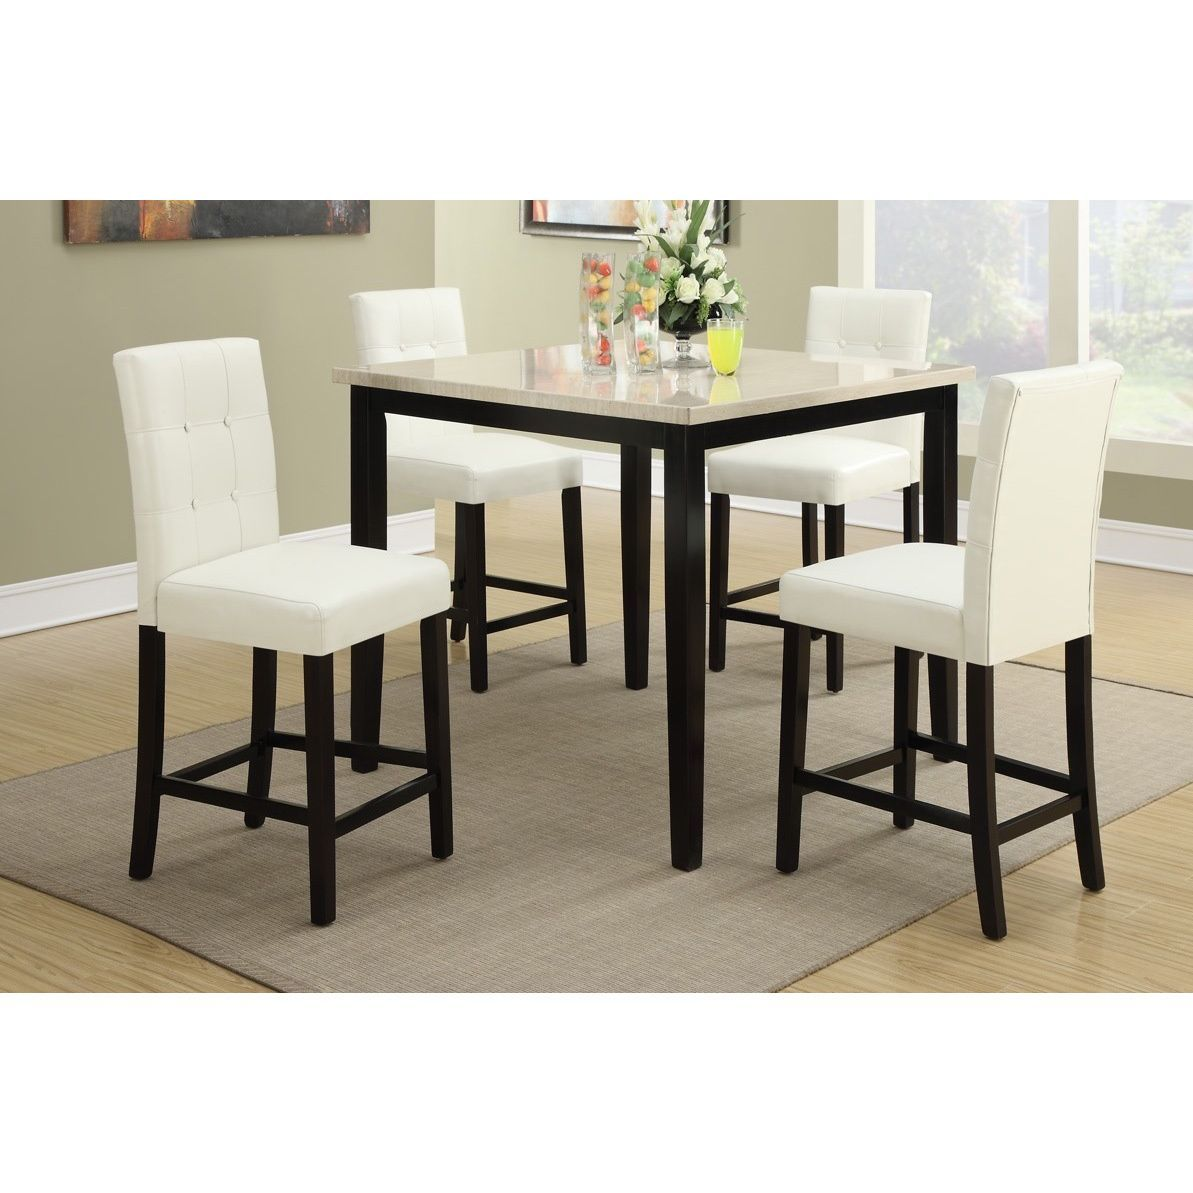 Willow white cream ivory dining chairs set of 4 rubberwood